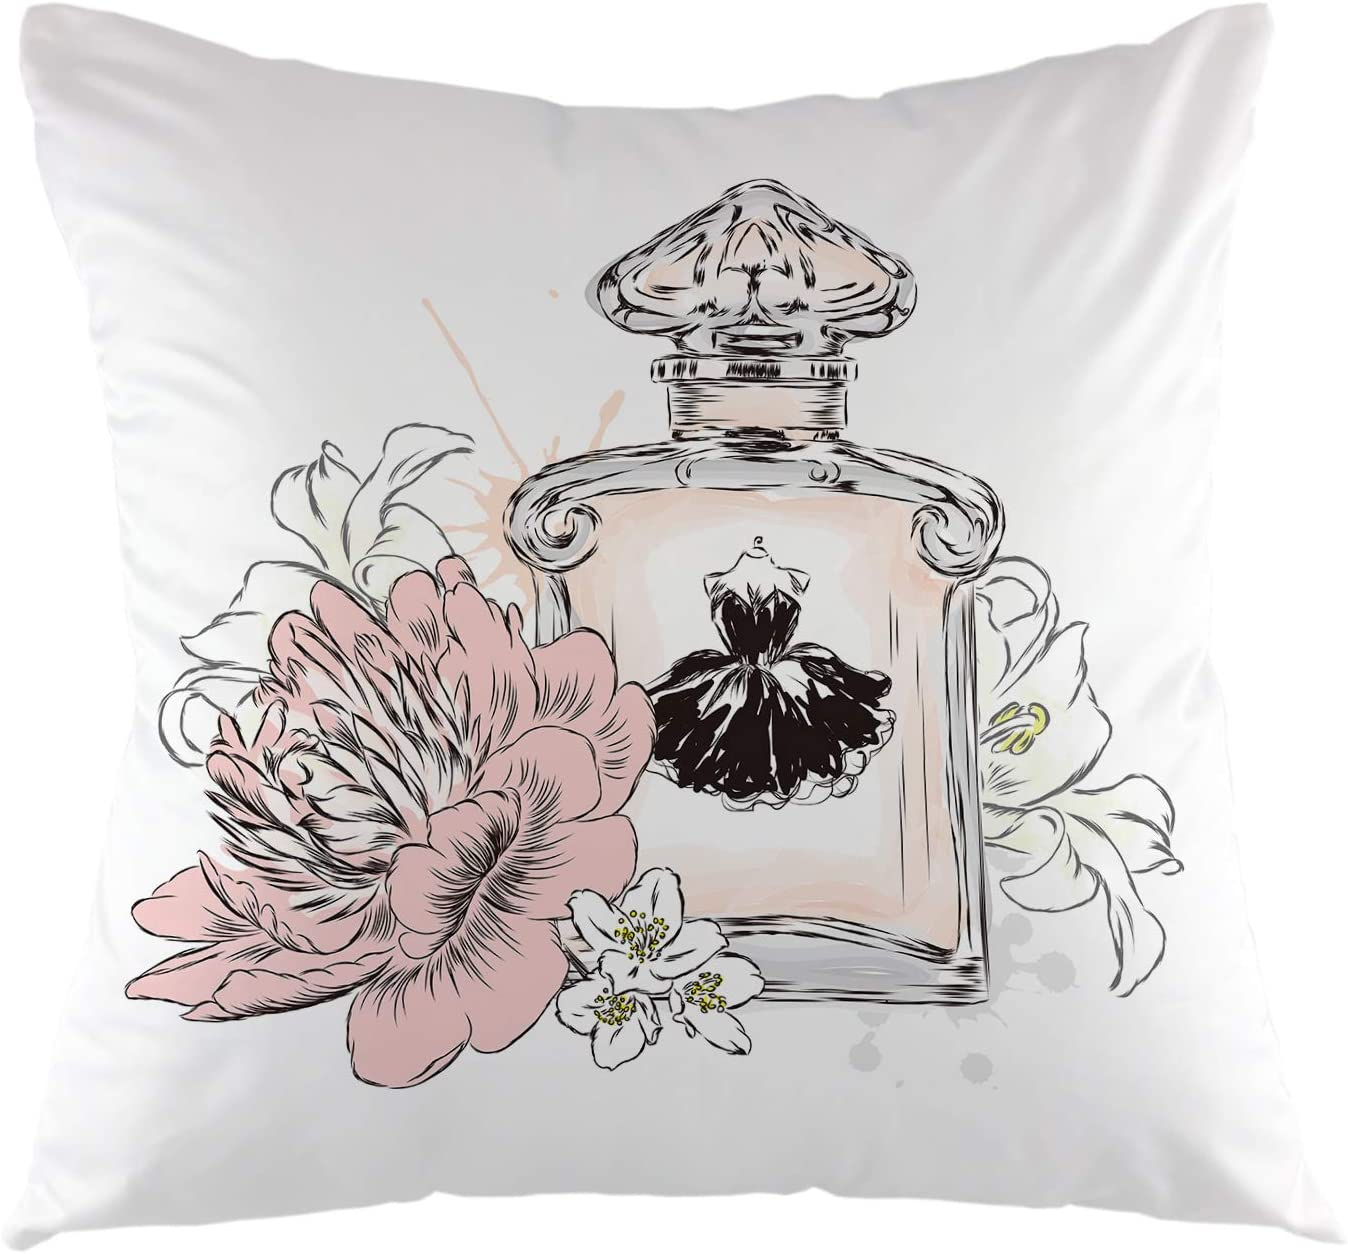 Ofloral Perfume Bottle Decorative Throw Pillow Cover Flowers Pillow Case Square Cushion Cover For Sofa Couch Home Car Bedroom Living Room Decor 18 X 18 Black Pink Yellow Home Kitchen